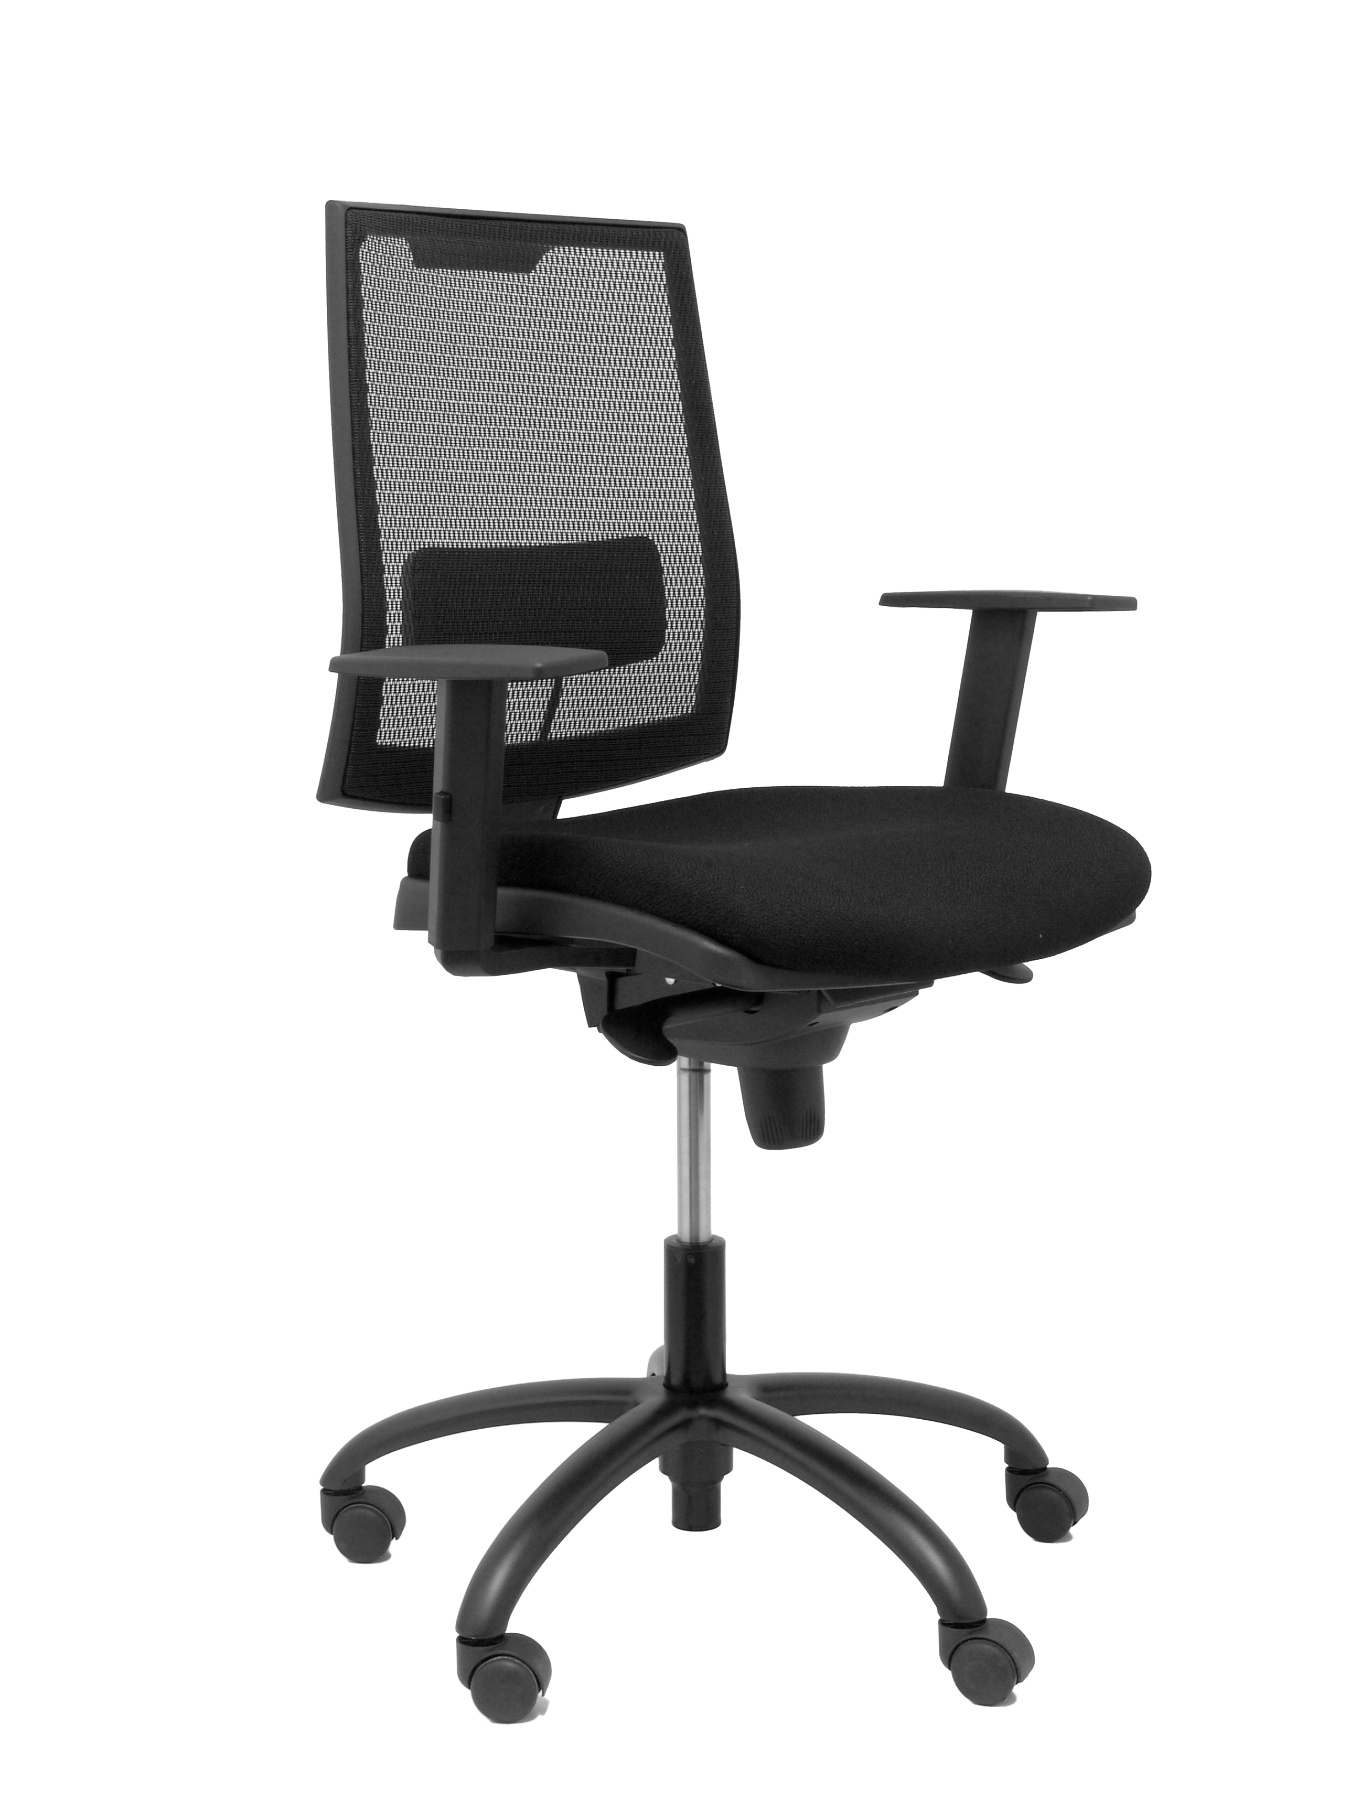 Ergonomic Office Chair With Mechanism Synchro, Arms Dimmable And Adjustable Height-Backing Mesh Transpire